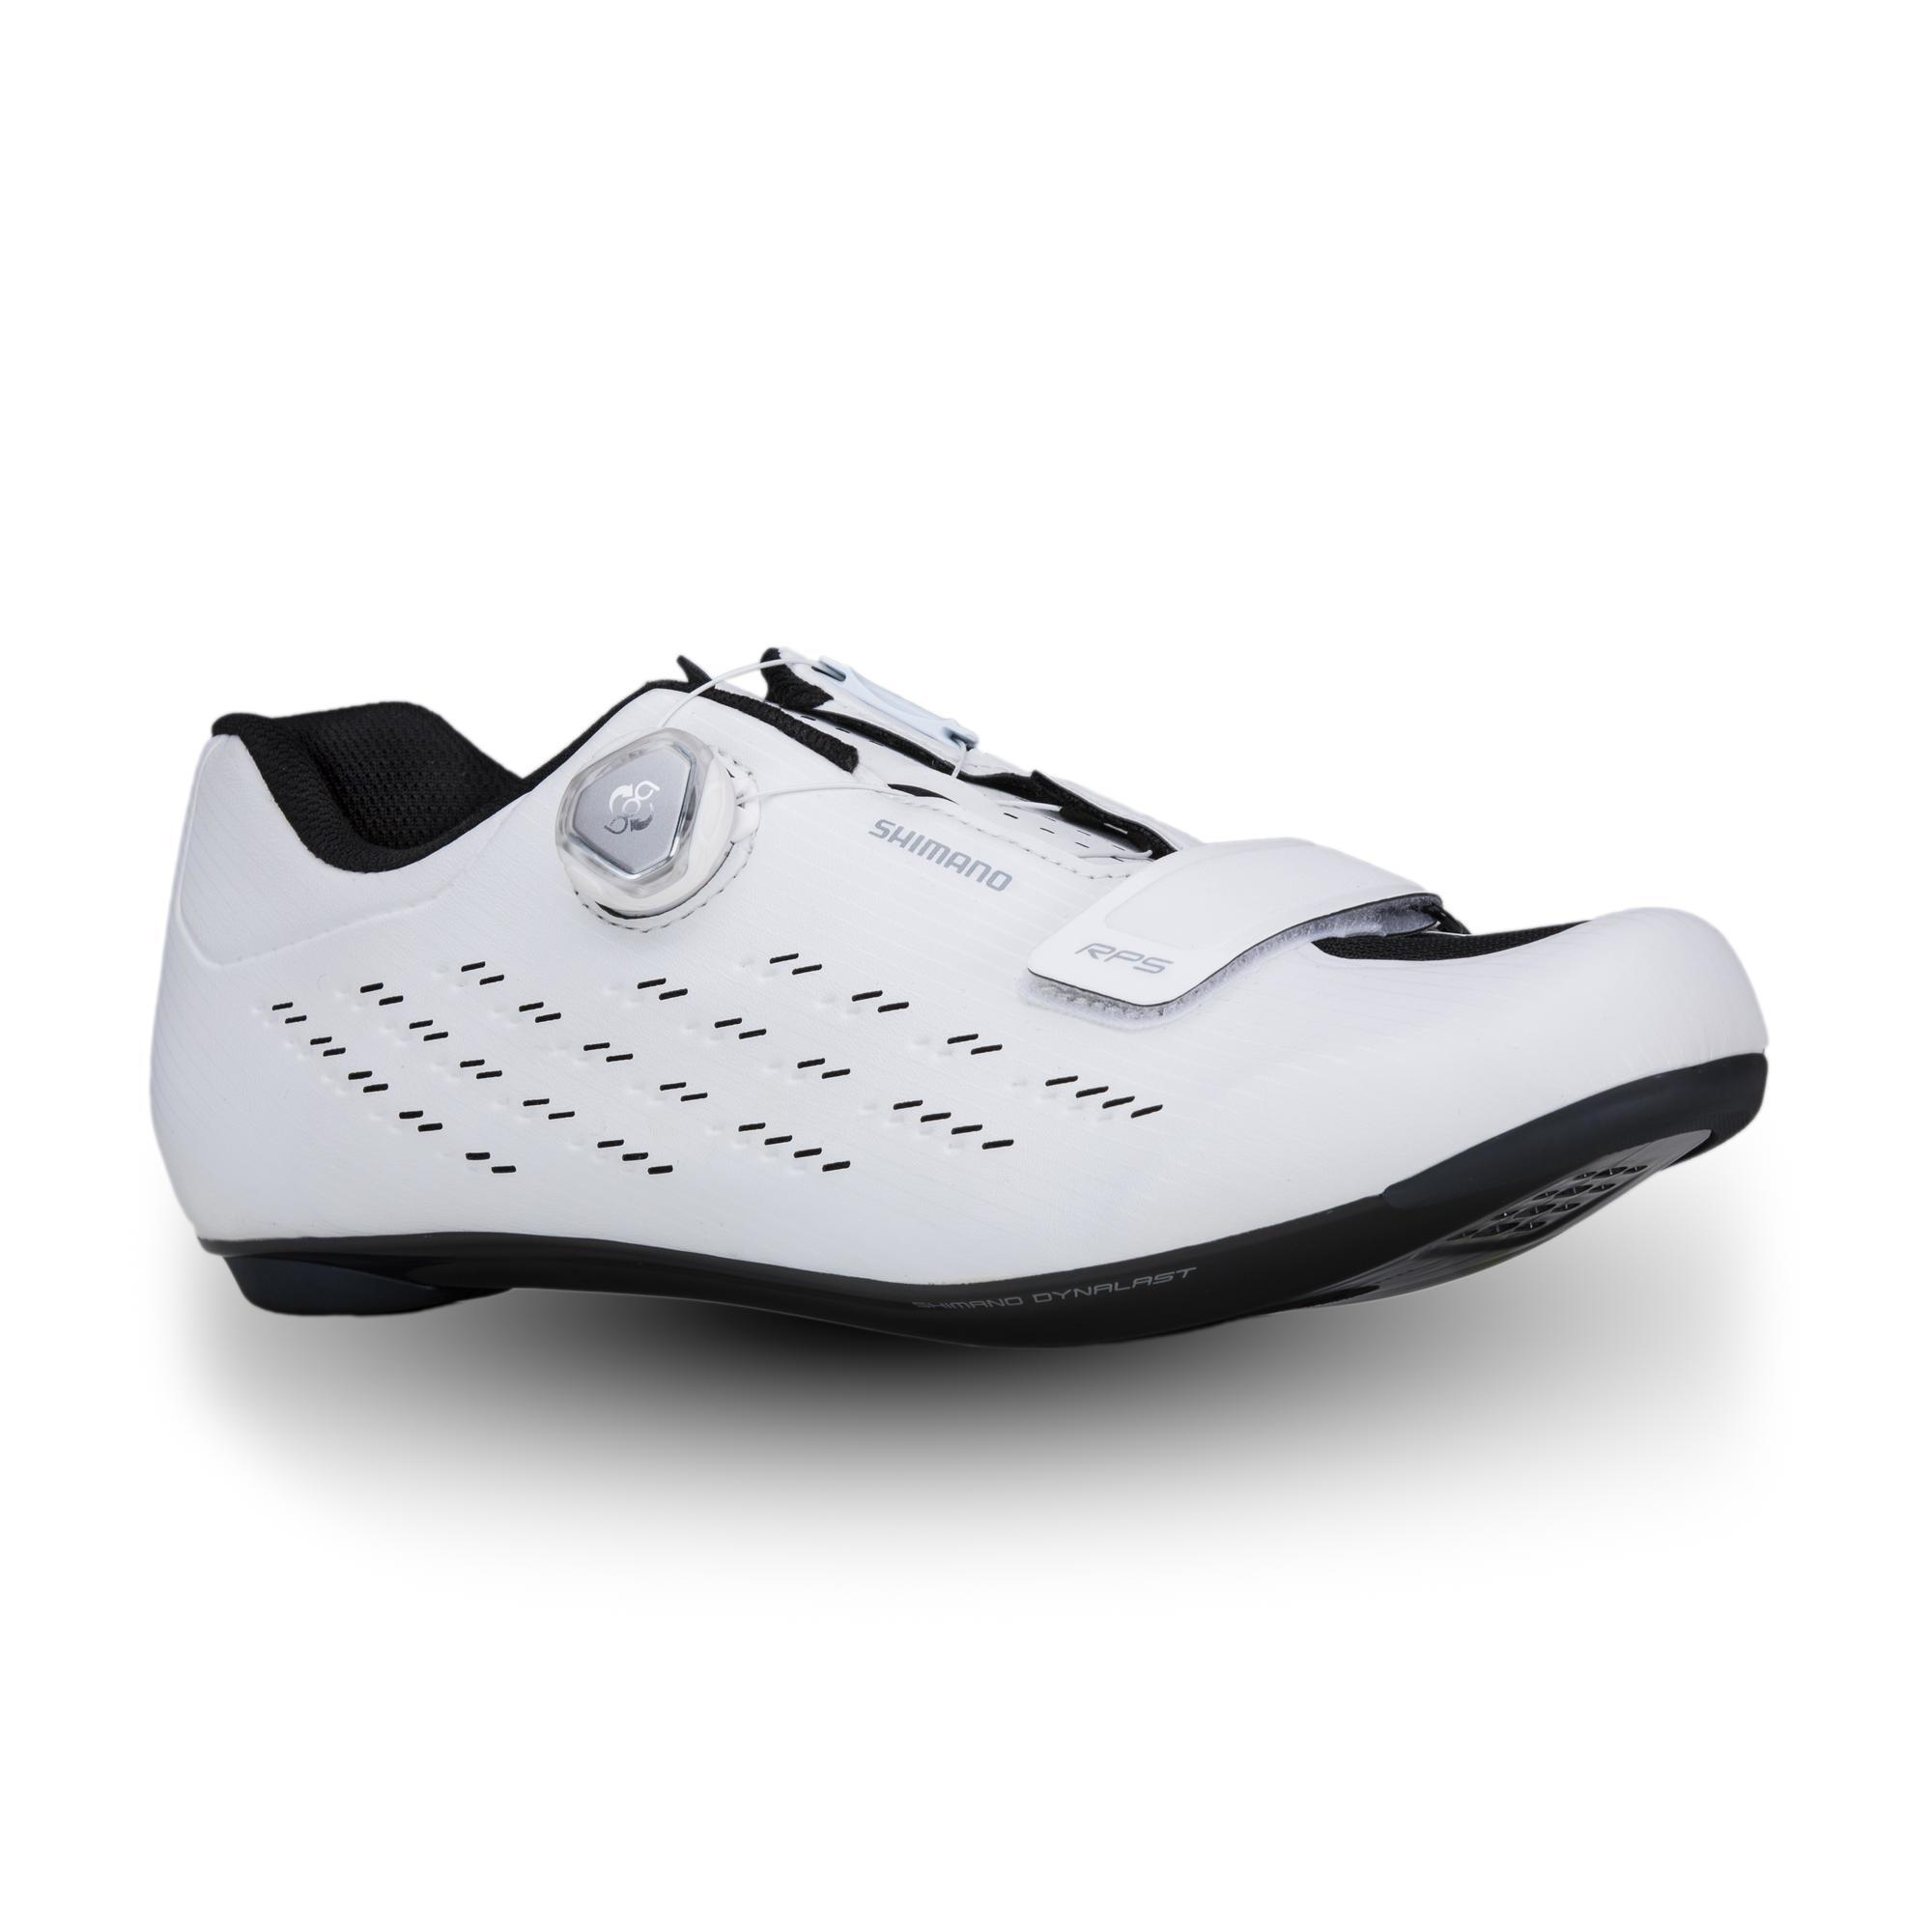 Chaussures vélo route SHIMANO RP5 blanc - Shimano